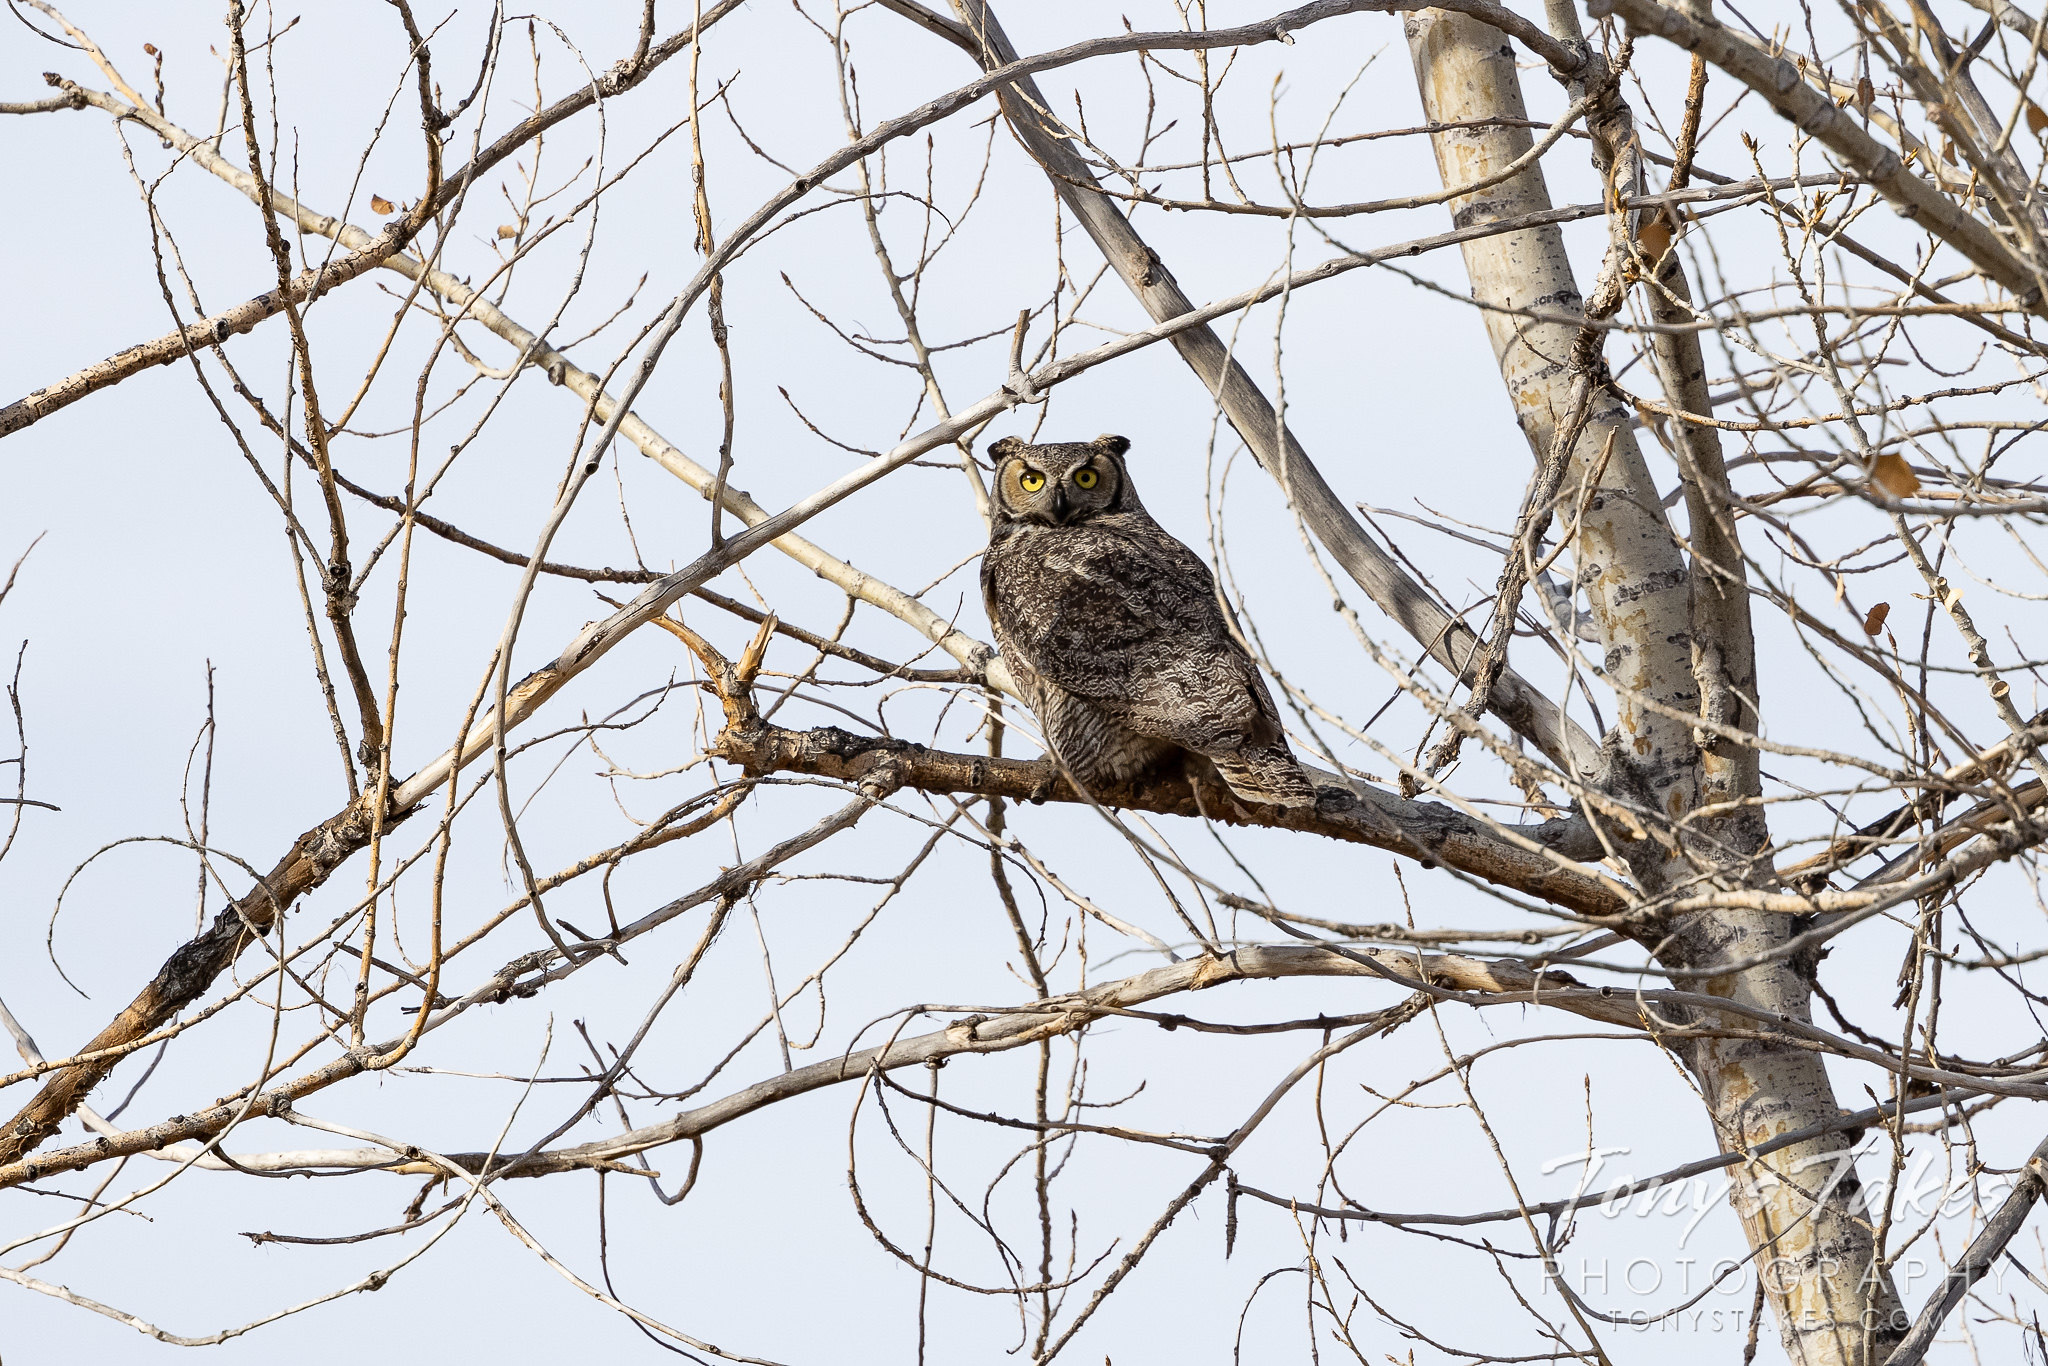 Great horned owl debates the best place to hide